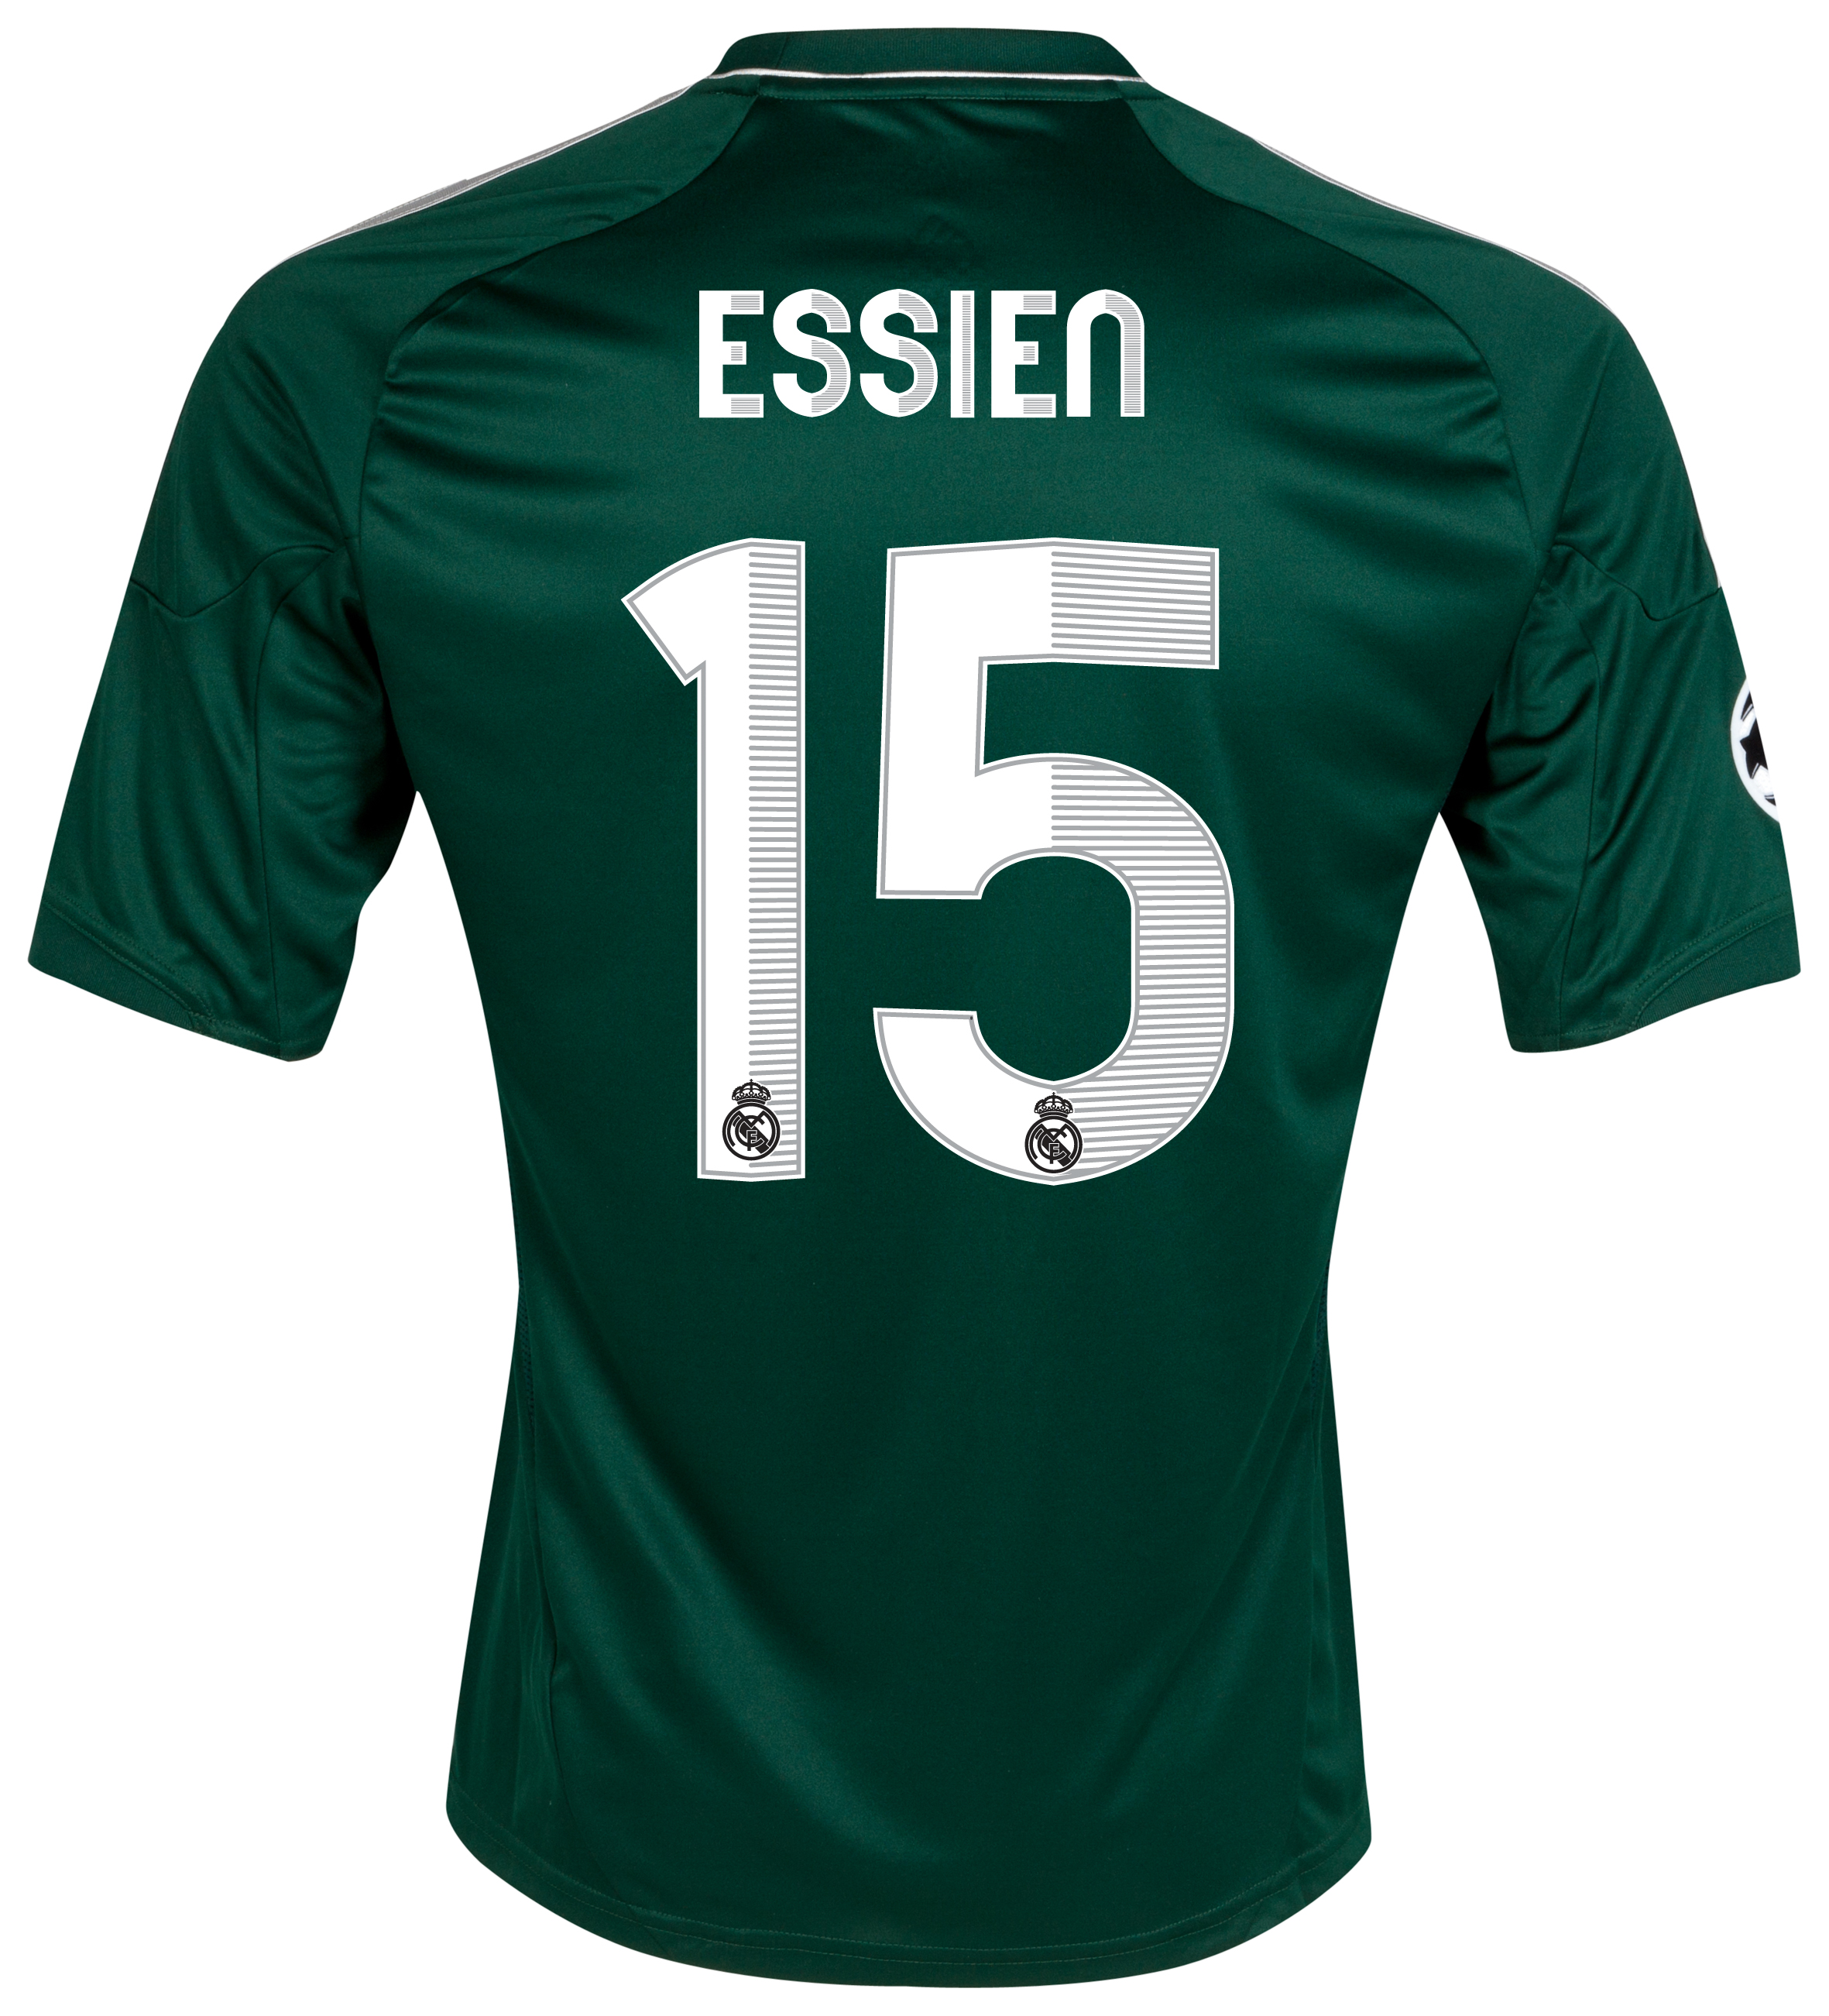 Real Madrid UEFA Champions League Third Shirt 2012/13 - Youths with Essien 15 printing